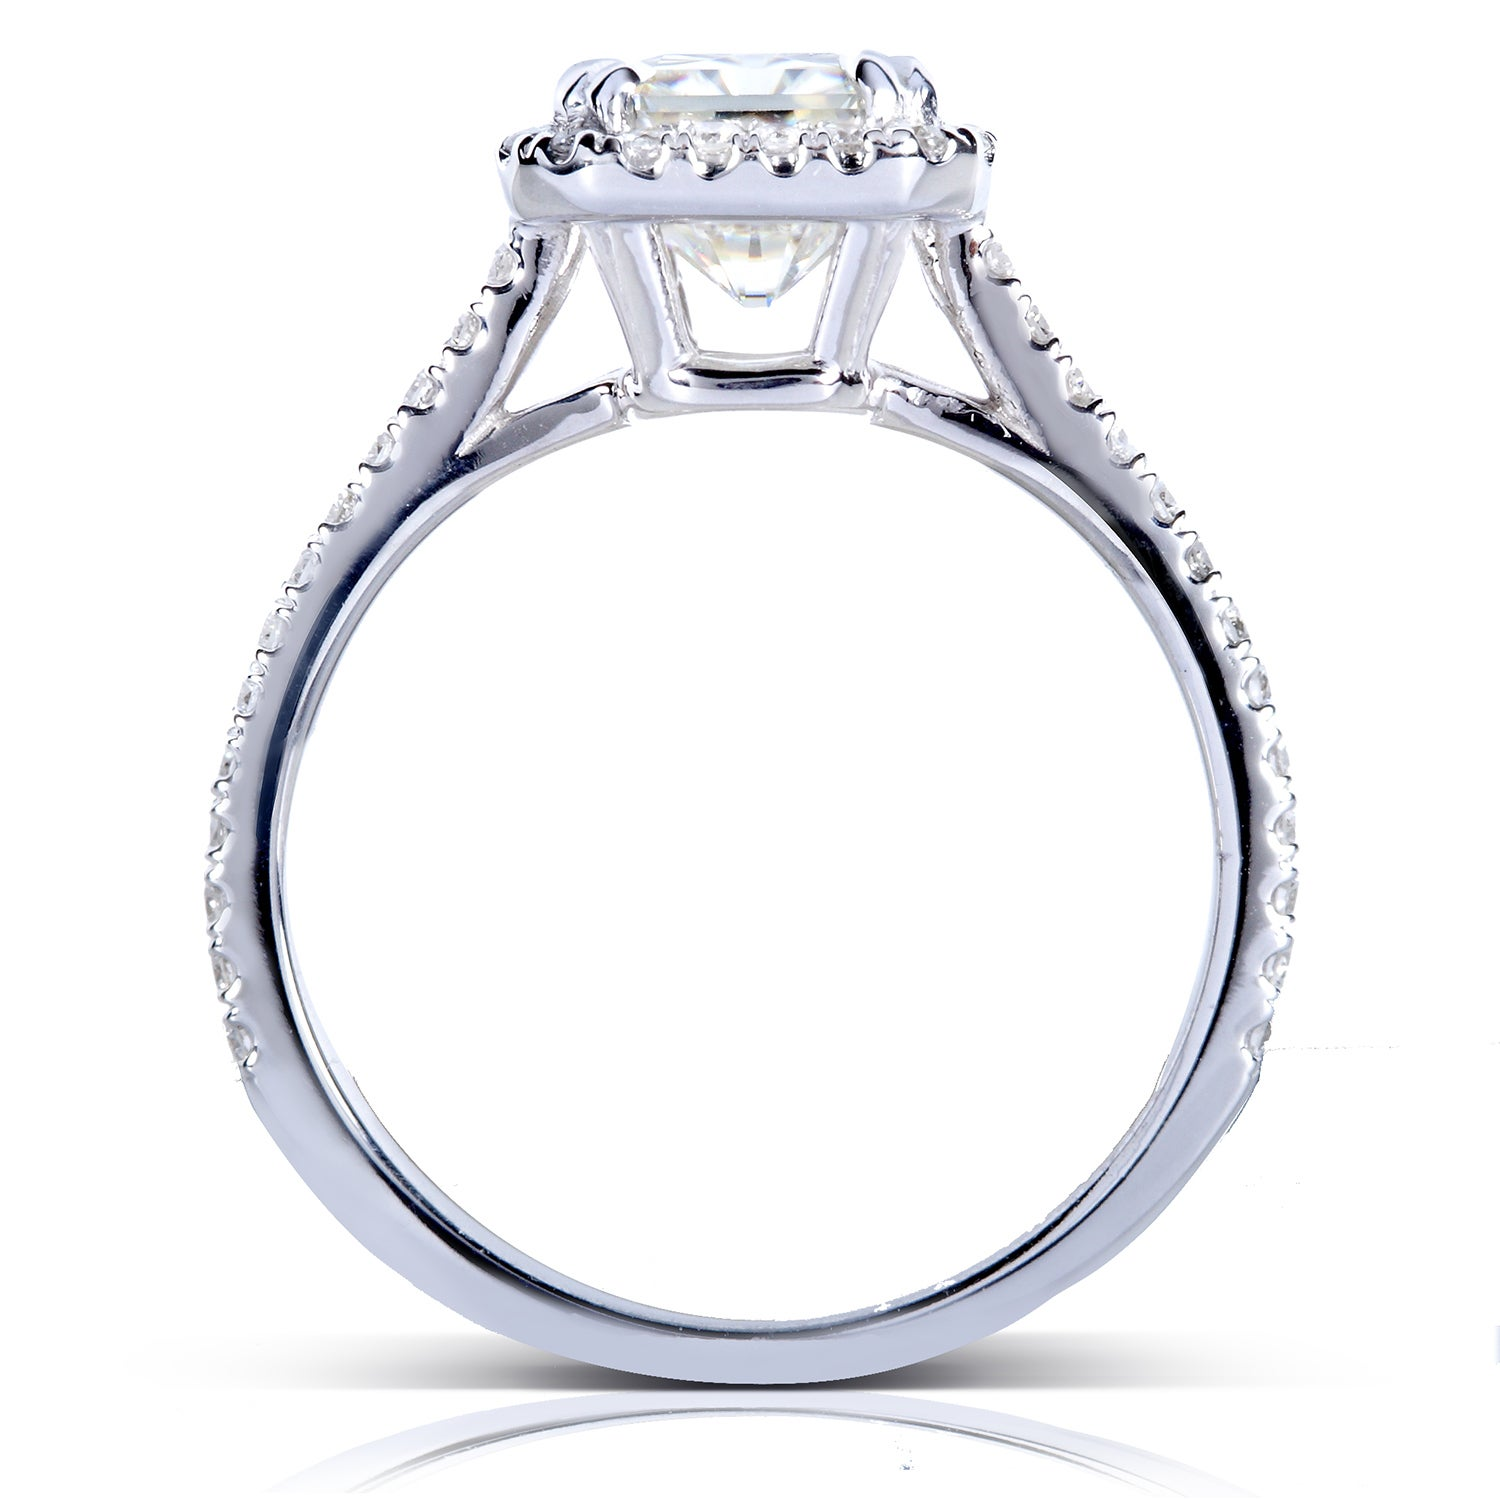 nyc rings mdc cfm engagementringsre pave diamond from radiant halo vintage diamonds engagement ring